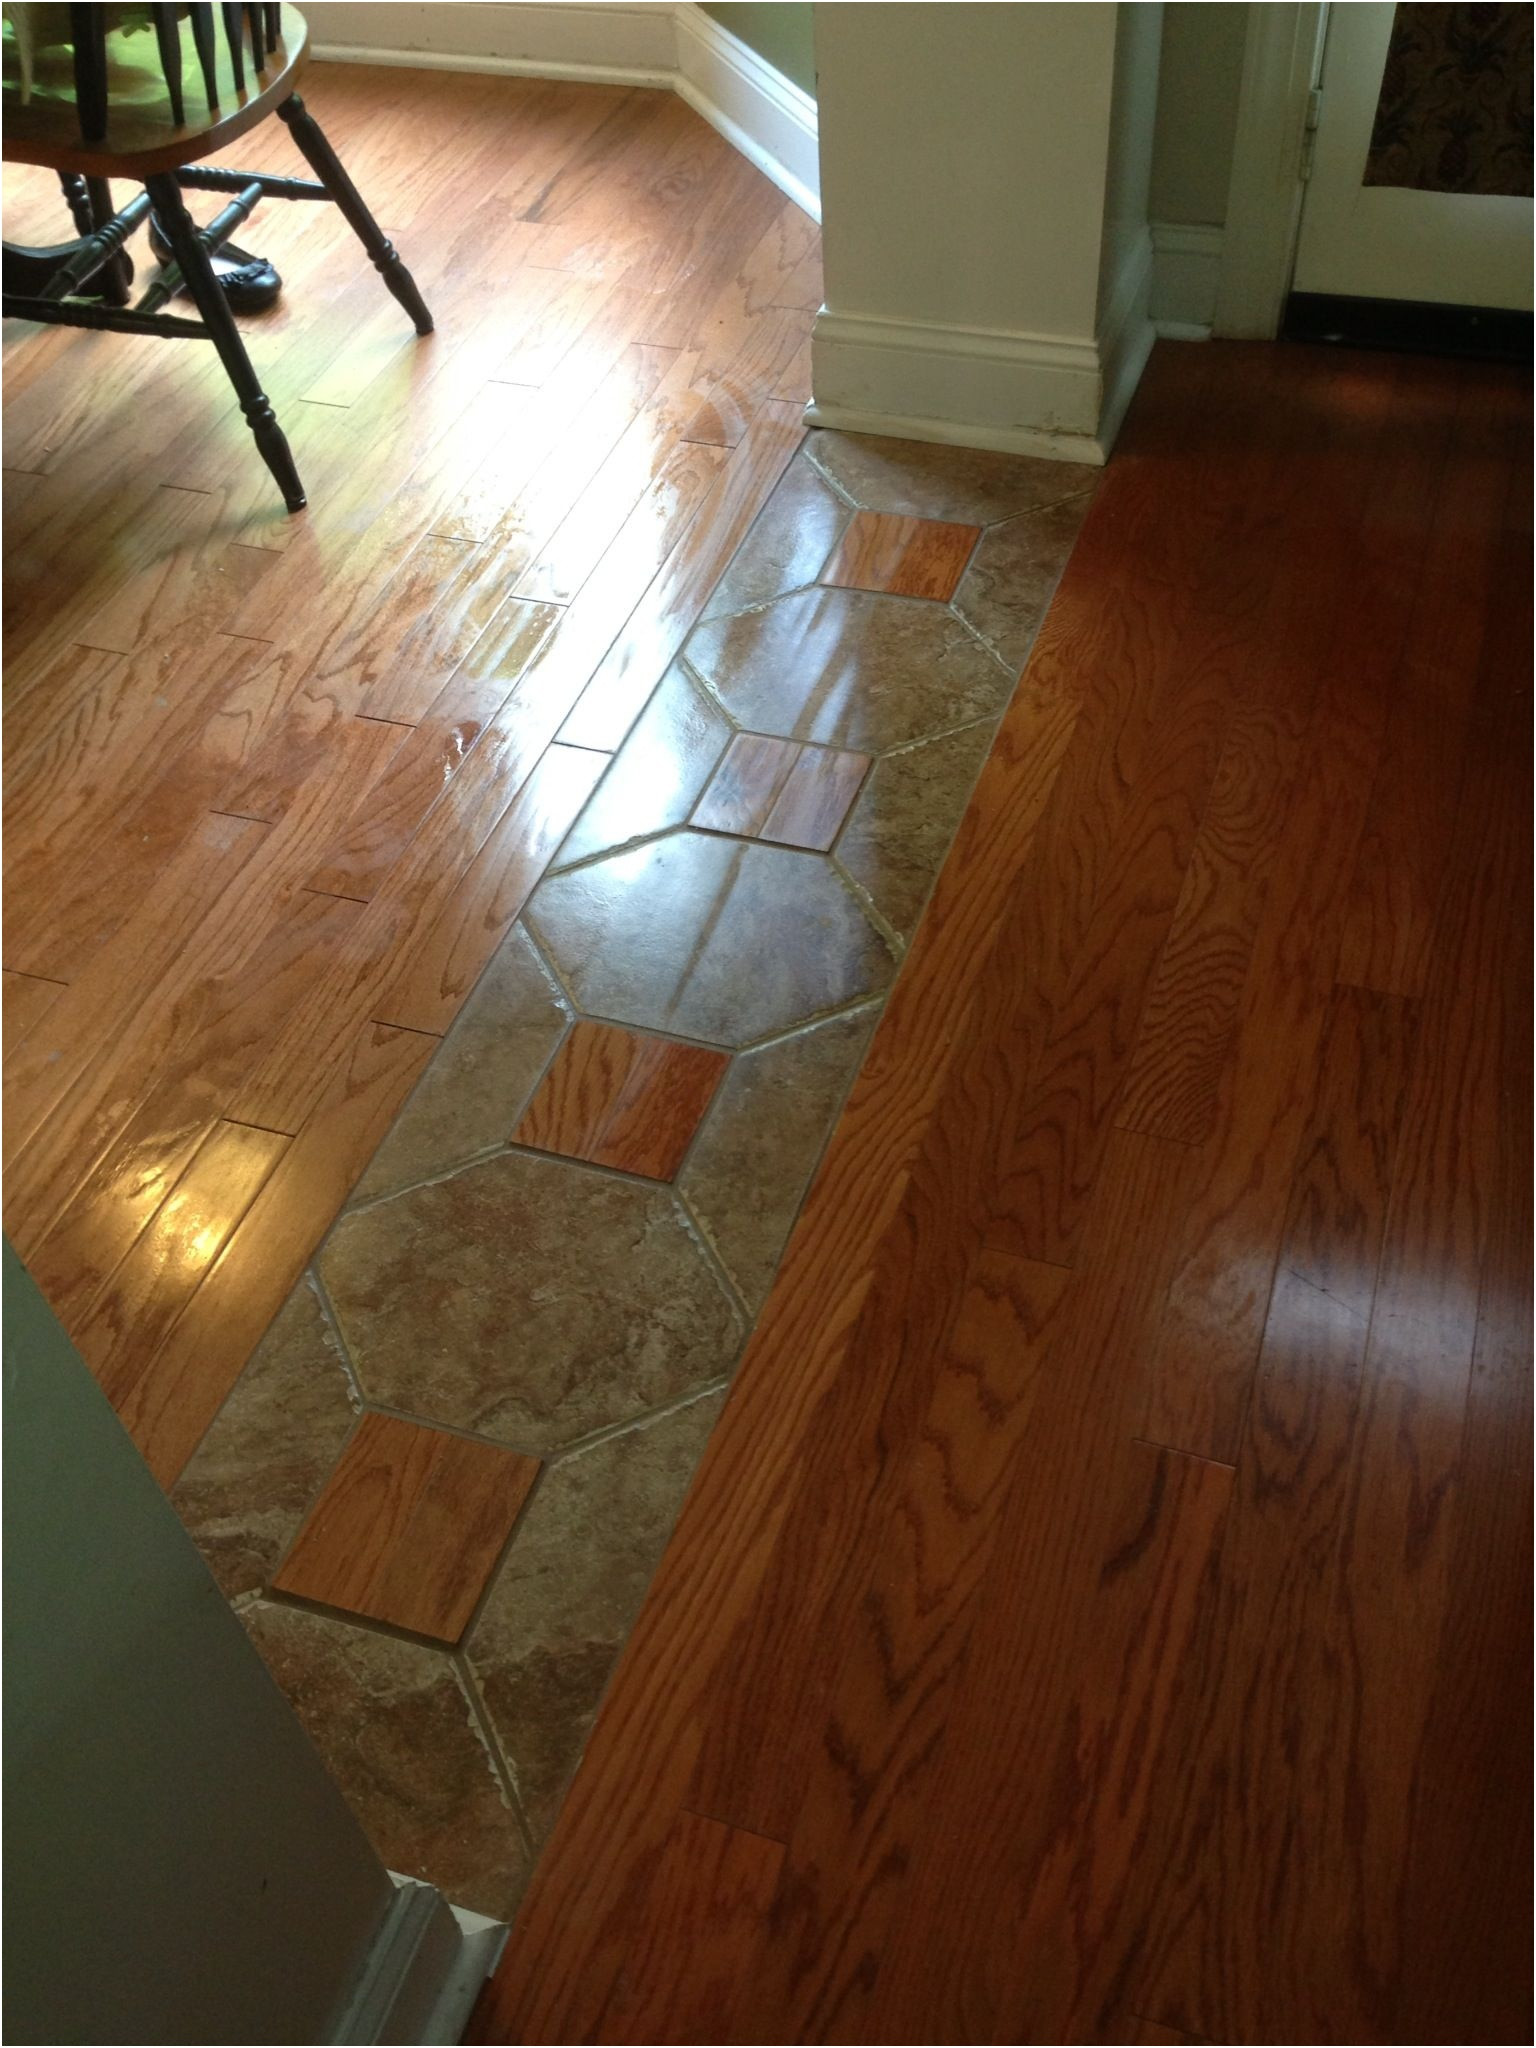 How to Install Engineered Hardwood Floor Over Plywood Of Best Way to Install Engineered Wood Flooring Over Concrete Galerie A Throughout Best Way to Install Engineered Wood Flooring Over Concrete Galerie A Really Cool Way to Tie